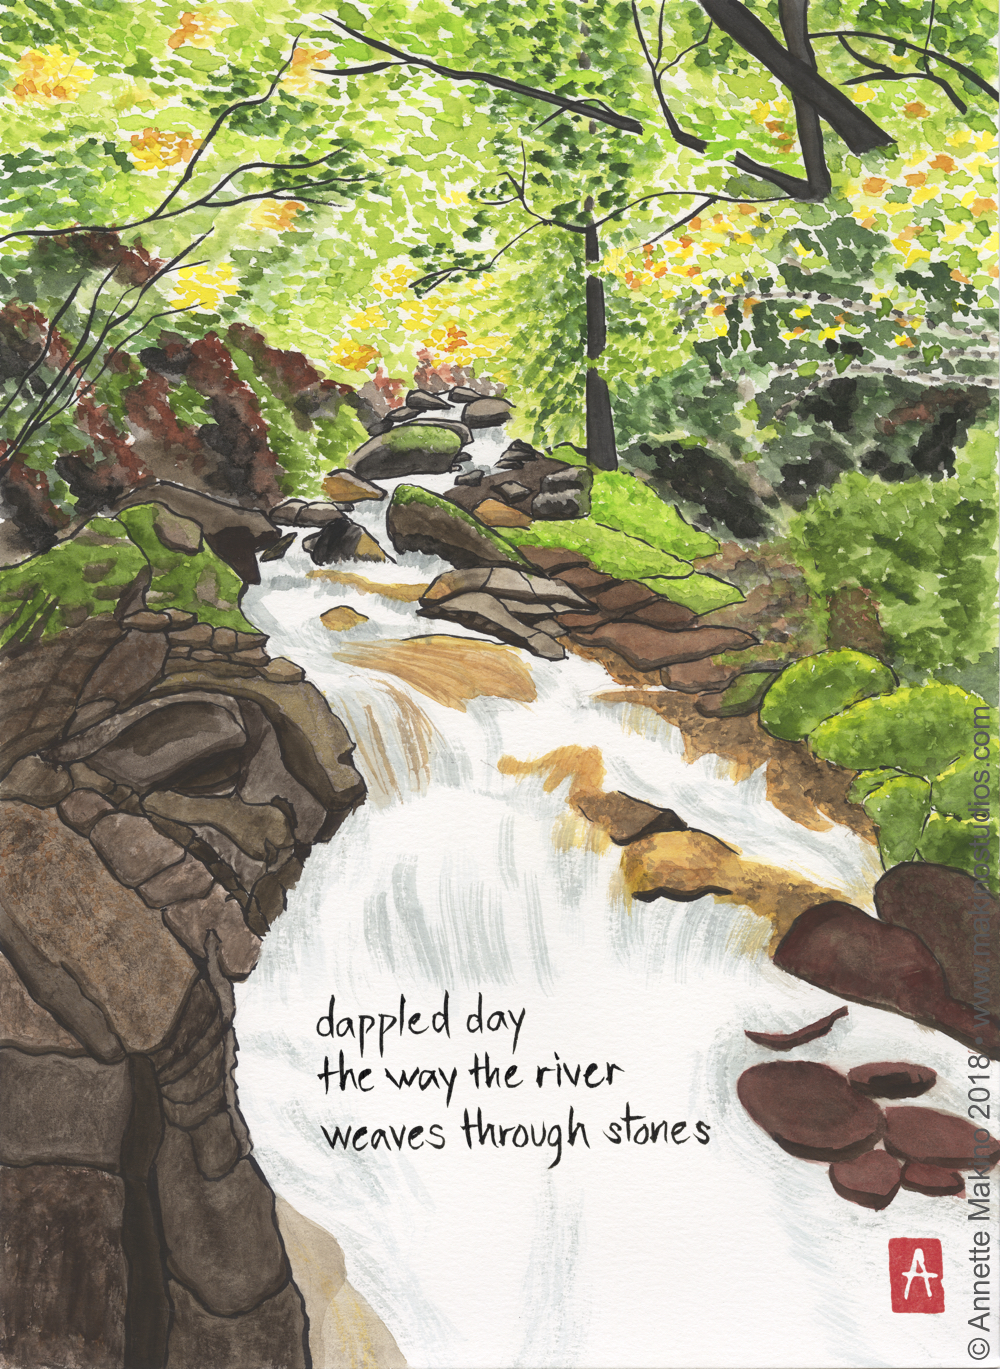 """dappled day"" is 11x14, painted with Japanese watercolors and sumi ink on paper. It is one of the new pieces in my 2019 calendar. A greeting card version reads, ""in wilderness we find our way home."" © Annette Makino 2018"